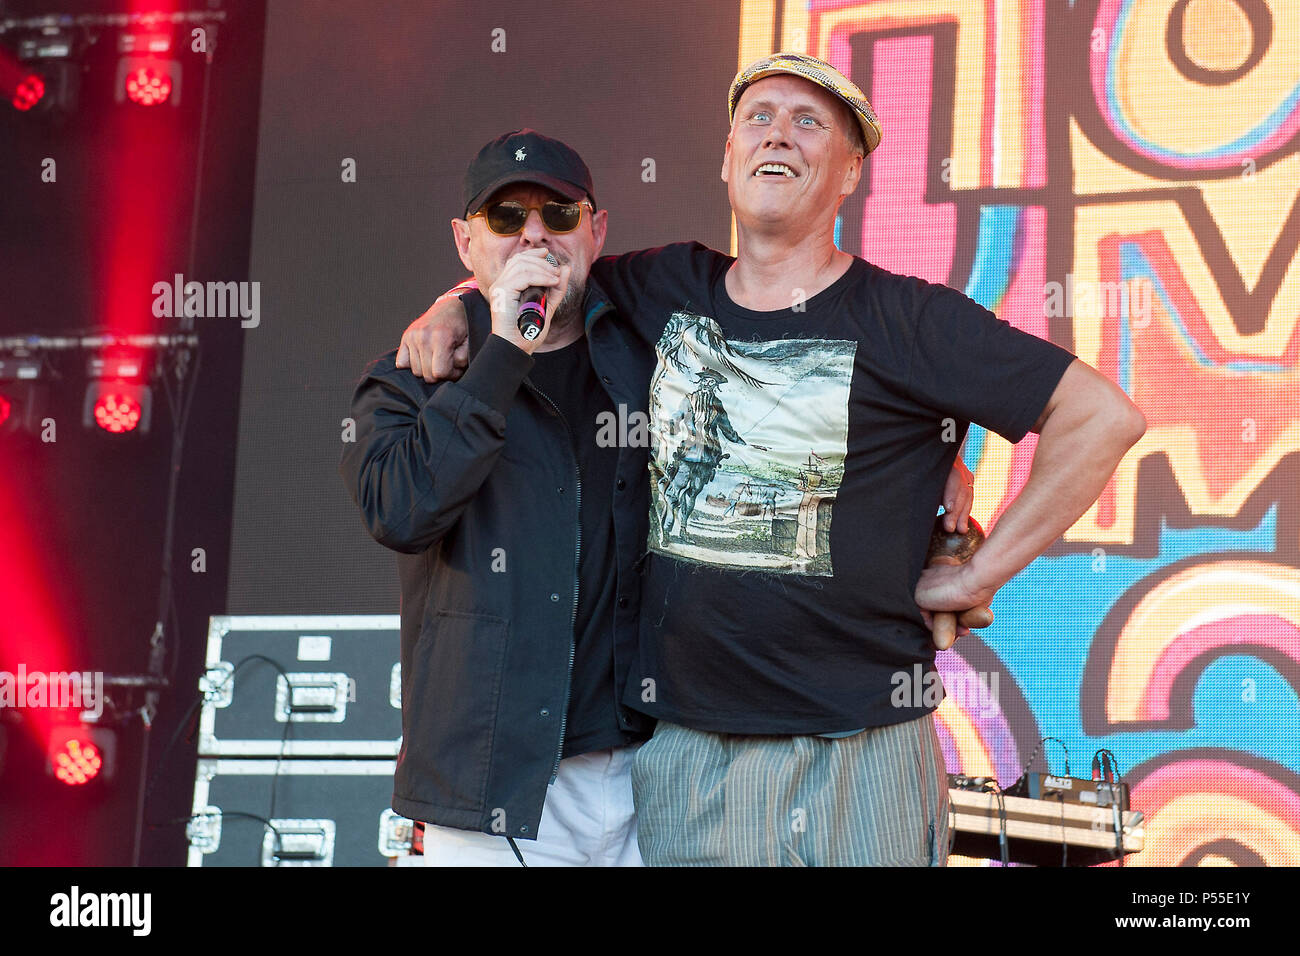 Edinburgh, UK. 24th June, 2018. The Happy Mondays in concert at The Sunday Sessions Scotland, Dalkeith Country Park, Edinburgh, Great Britain 24th June 2018 Credit: Stuart Westwood/Alamy Live News - Stock Image